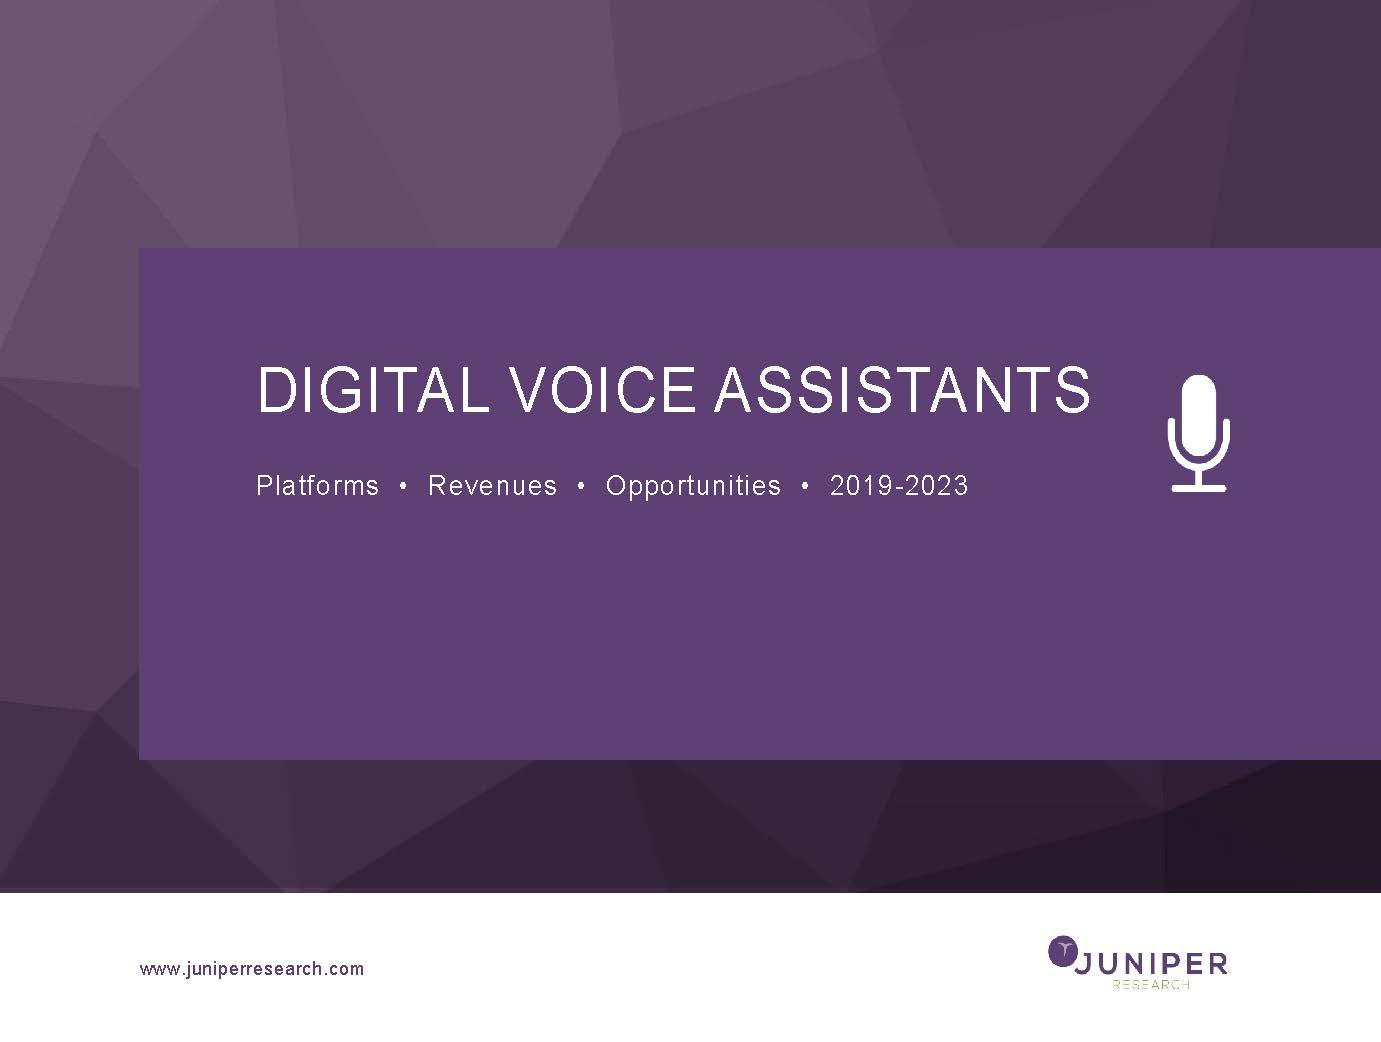 Digital Voice Assistants: Platforms, Revenues & Opportunities 2019-2023 Full Research Suite